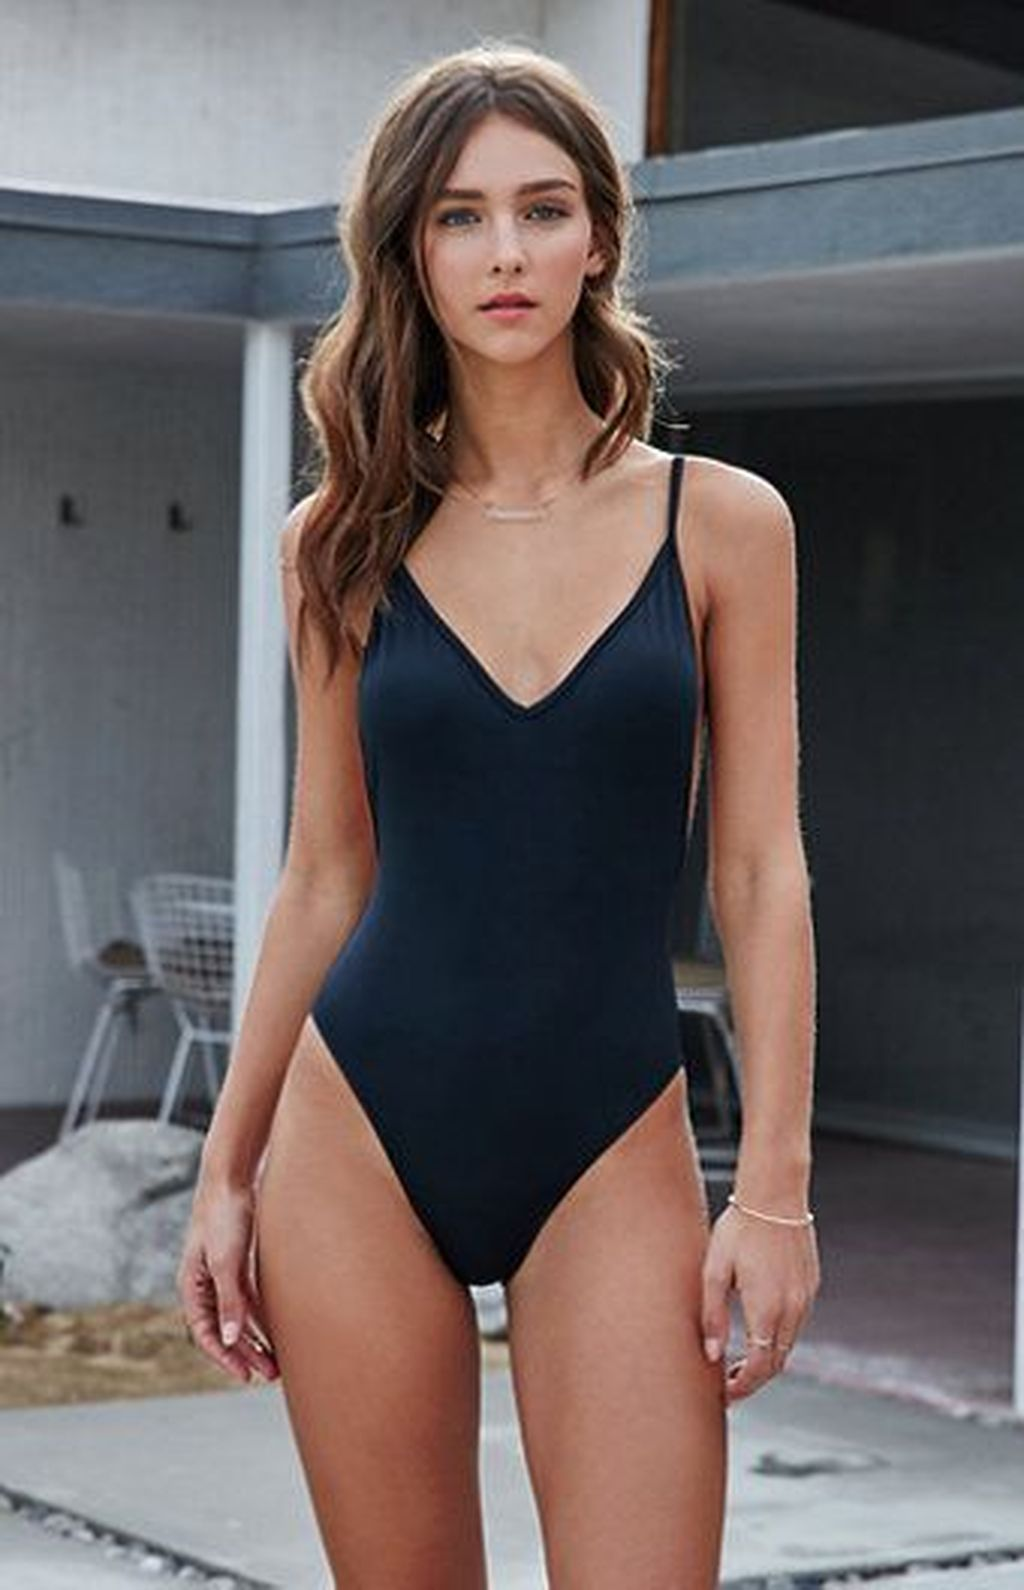 966ddd75efb 41 Attractive Swimsuits Outfit Ideas | Women Fashion | Pinterest | One  Piece Swimsuit, Swimsuits and Bathing suits one piece